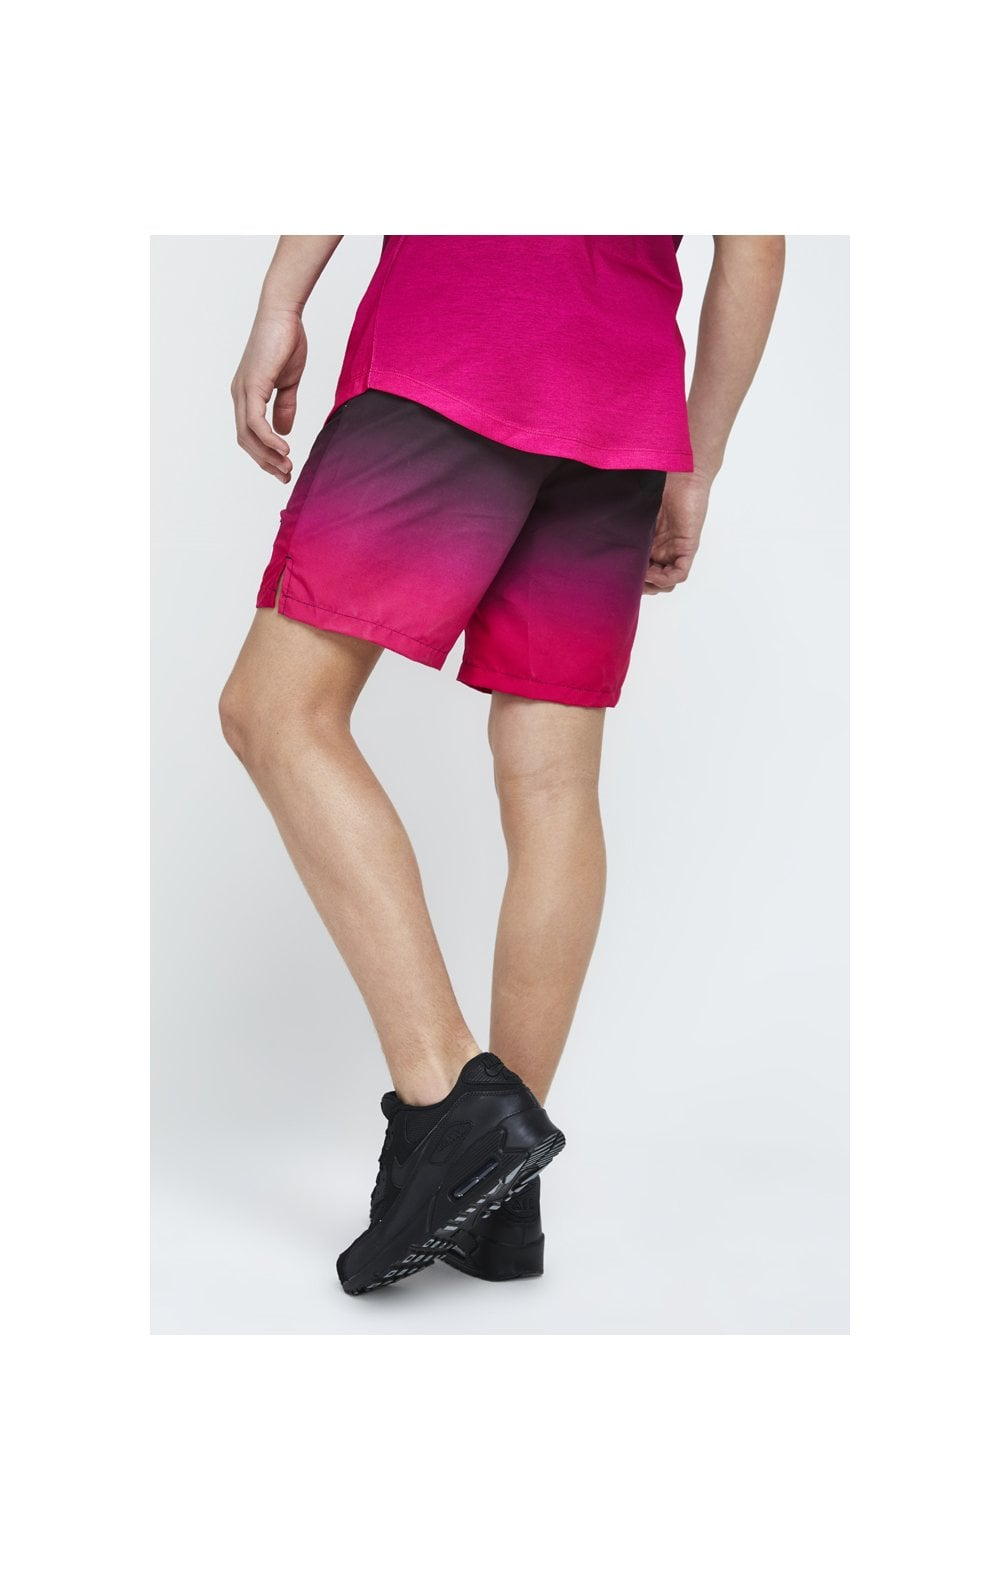 Illusive London Swim Shorts - Black & Pink (3)